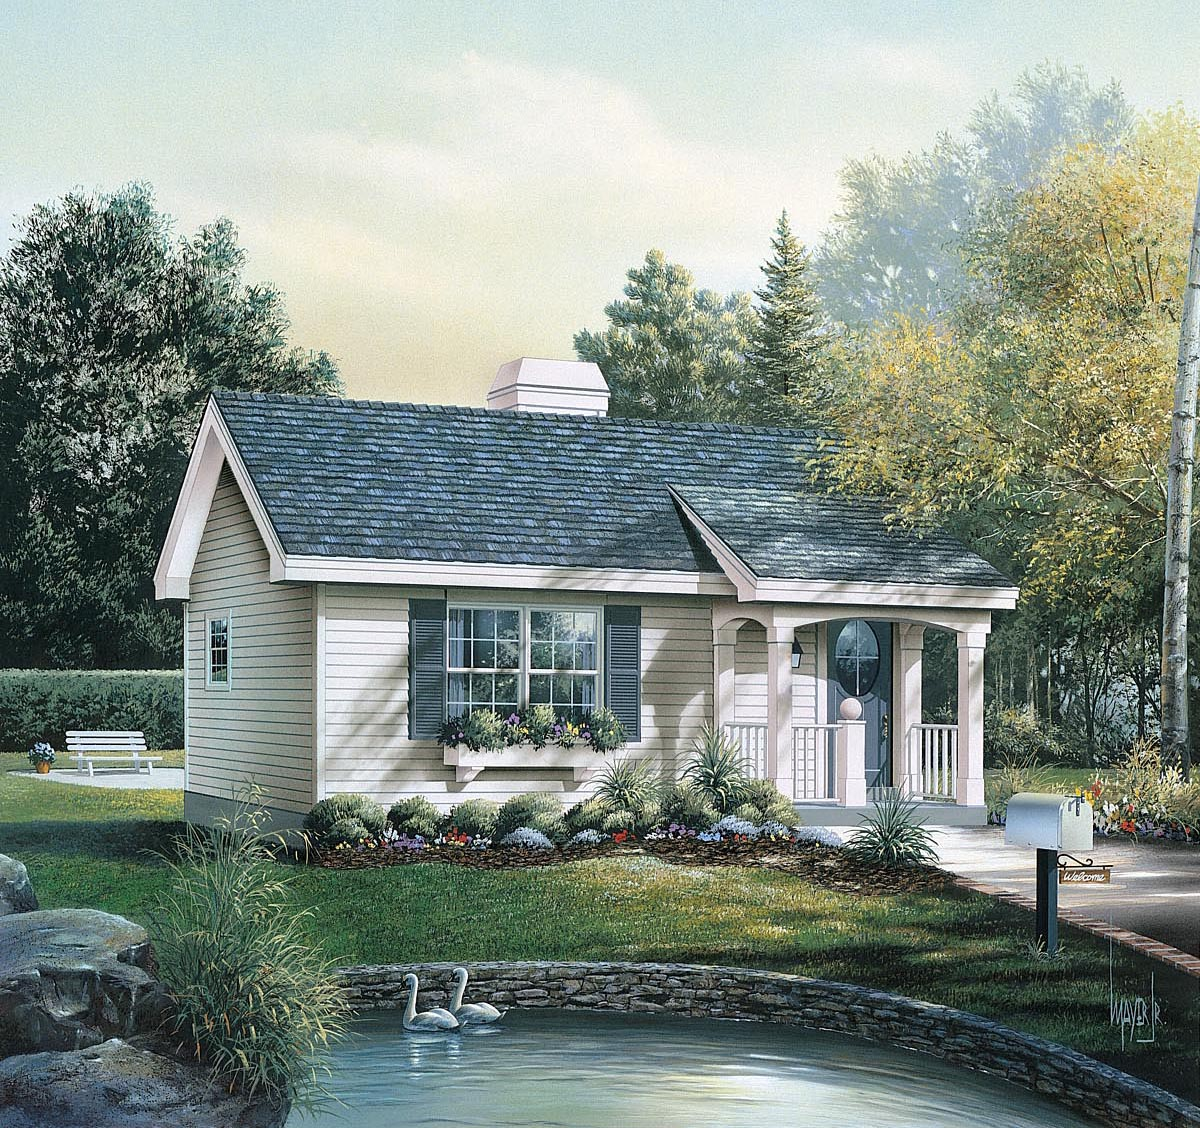 click here to see an even larger picture cabin colonial cottage country ranch house plan - Colonial Lake House Plans